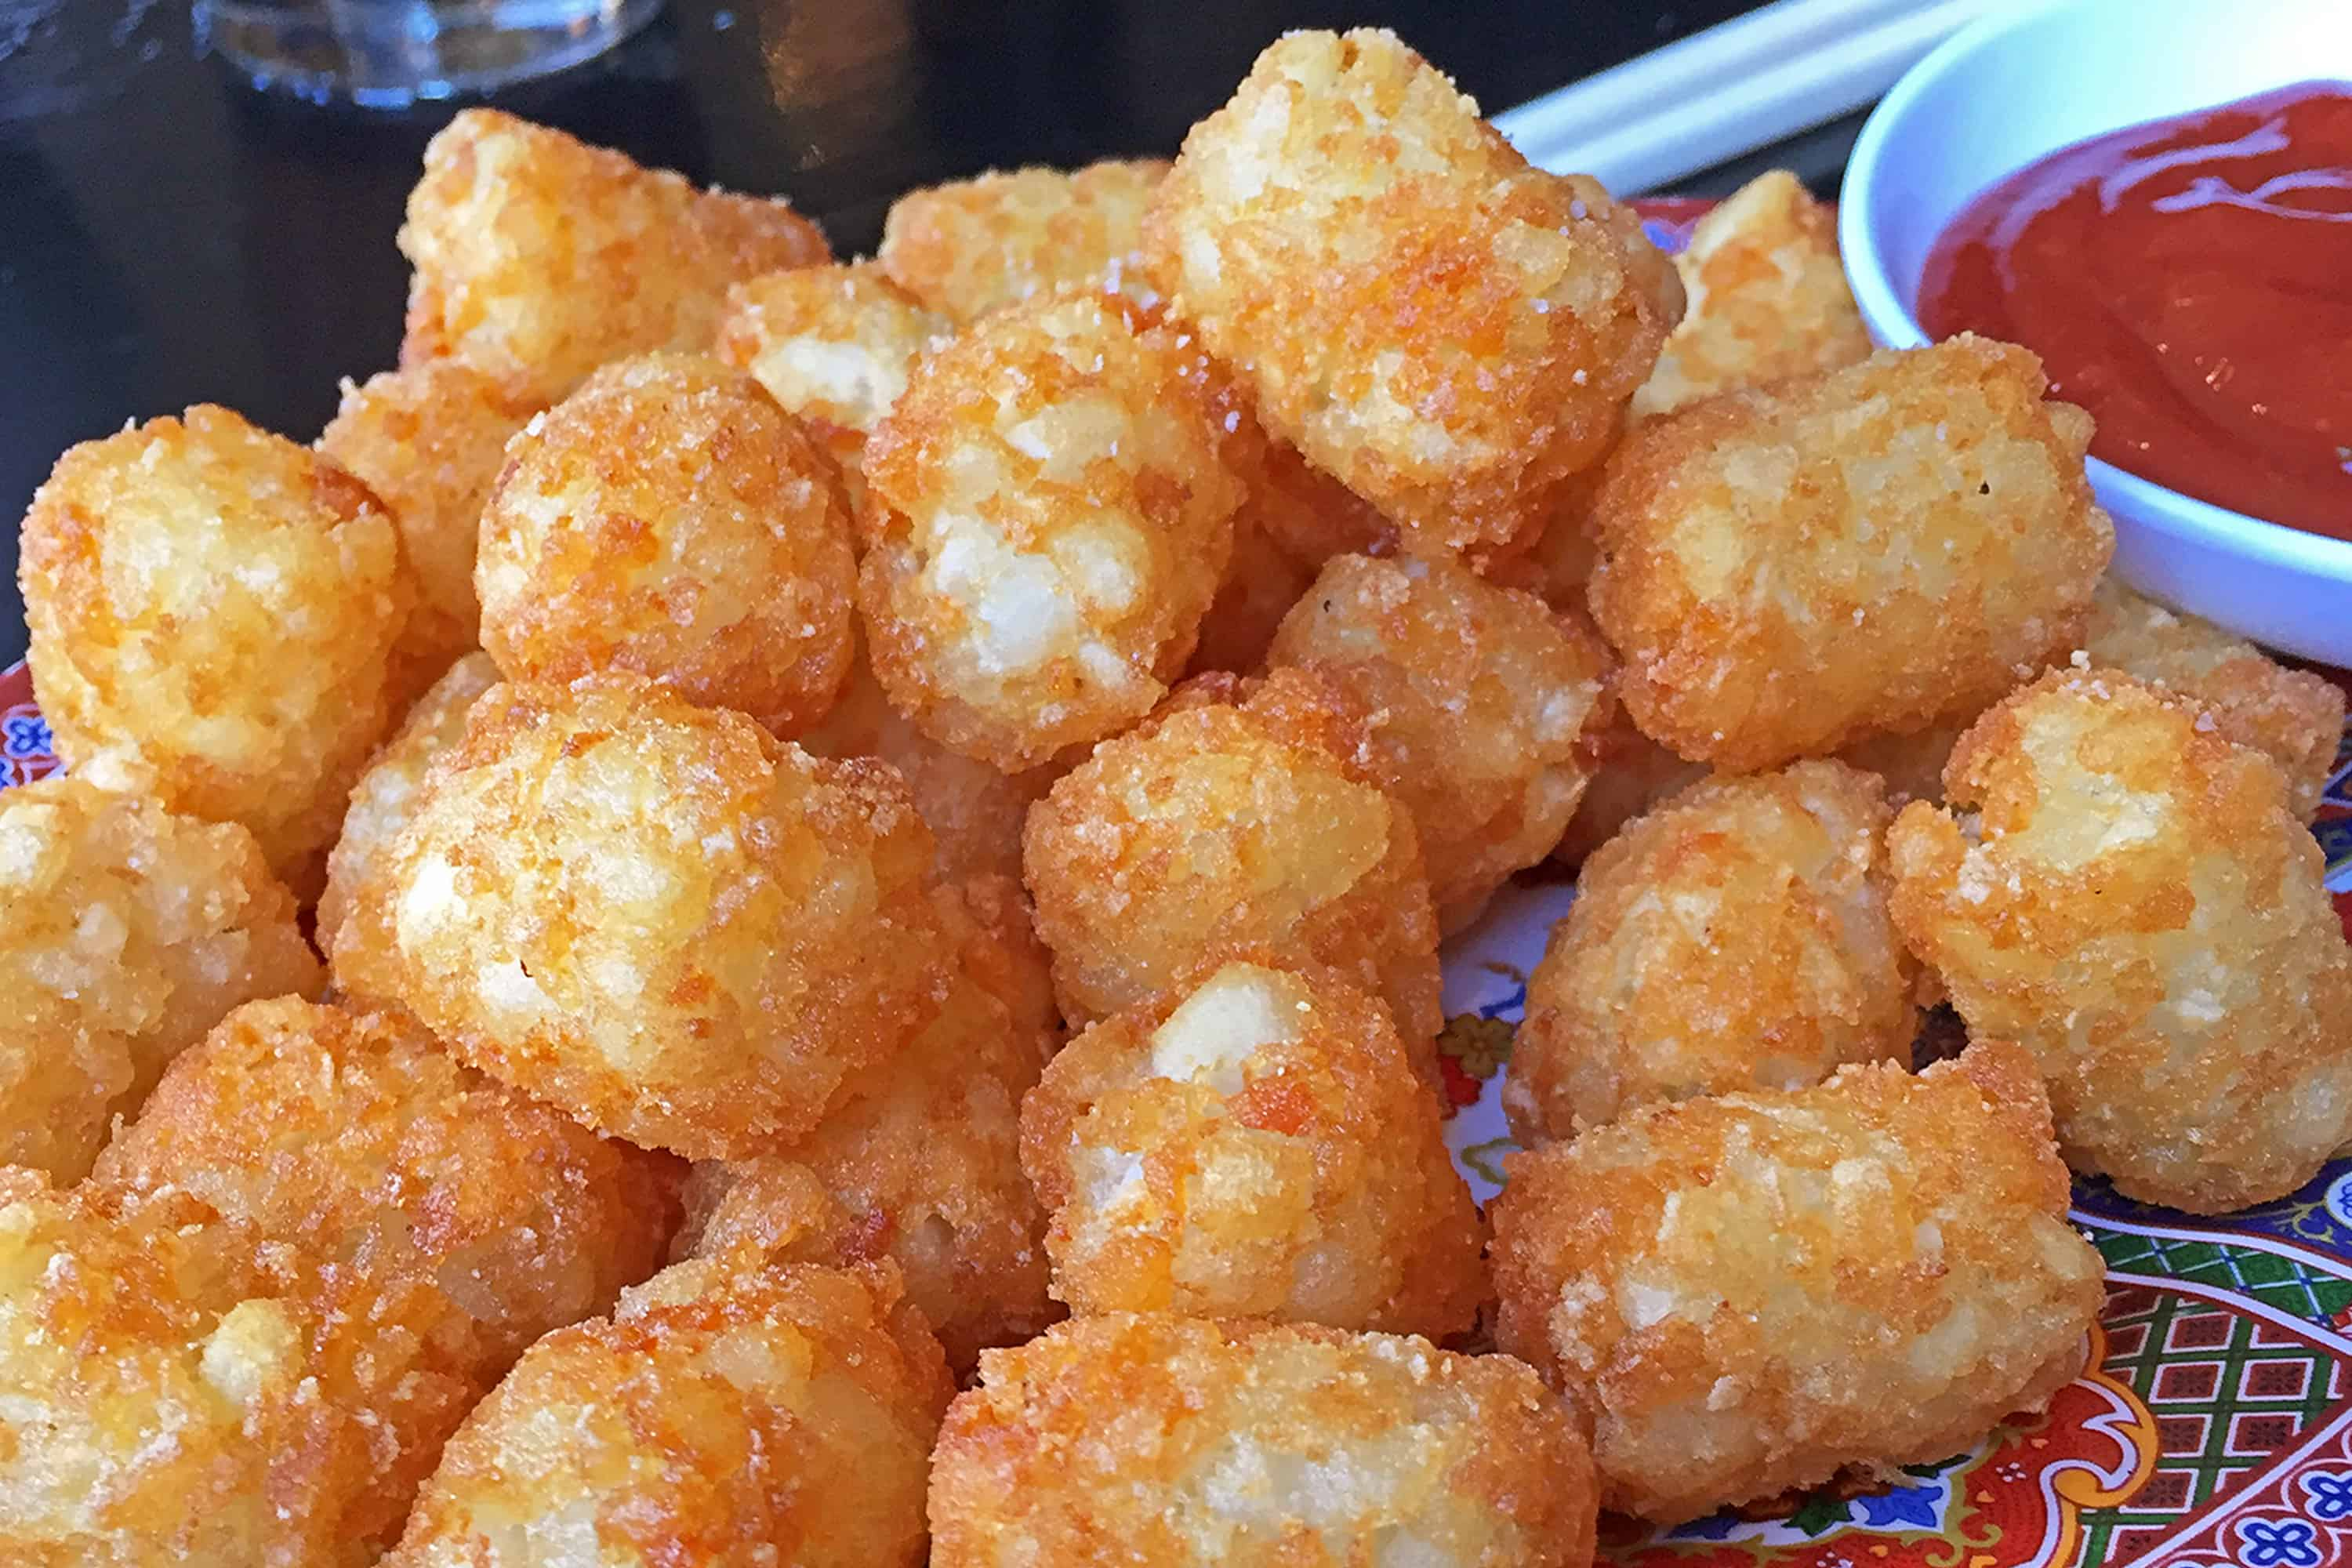 Tator tots and spicy ketchup from Talde Brooklyn in MAN'edged Magazine best foods to celebrate 420